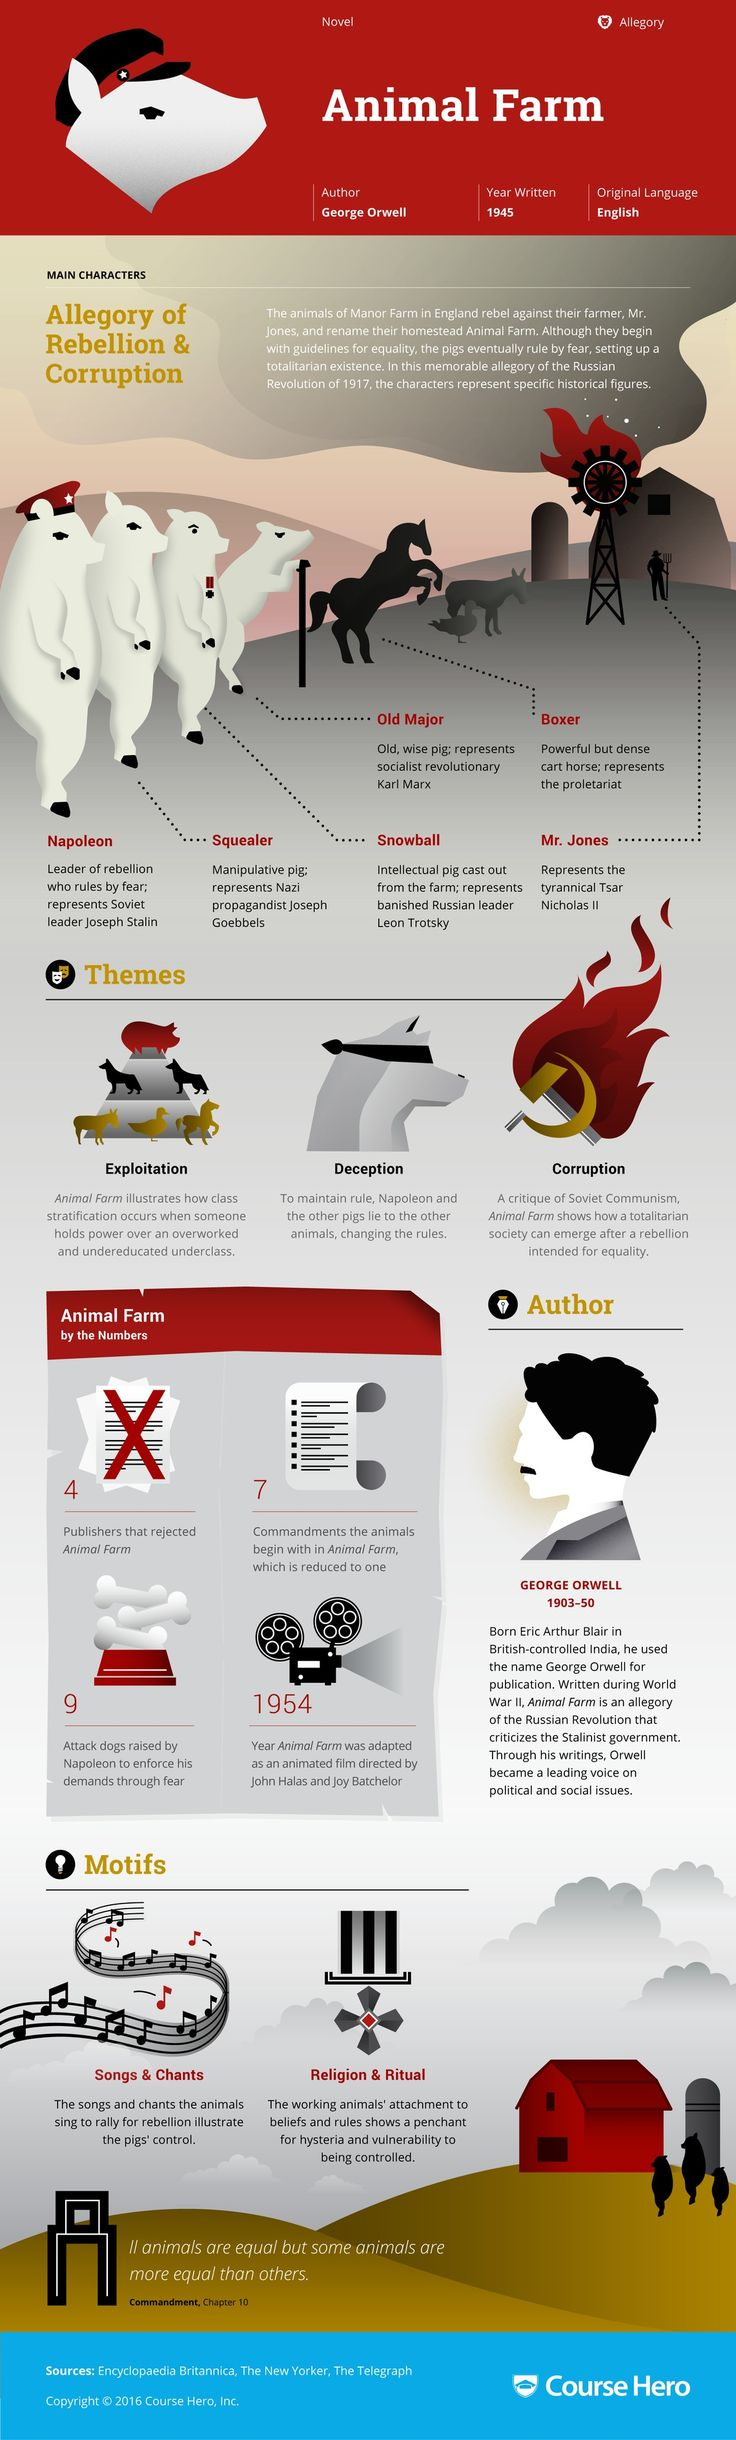 best ideas about george orwell animal farm animal farm infographic course hero